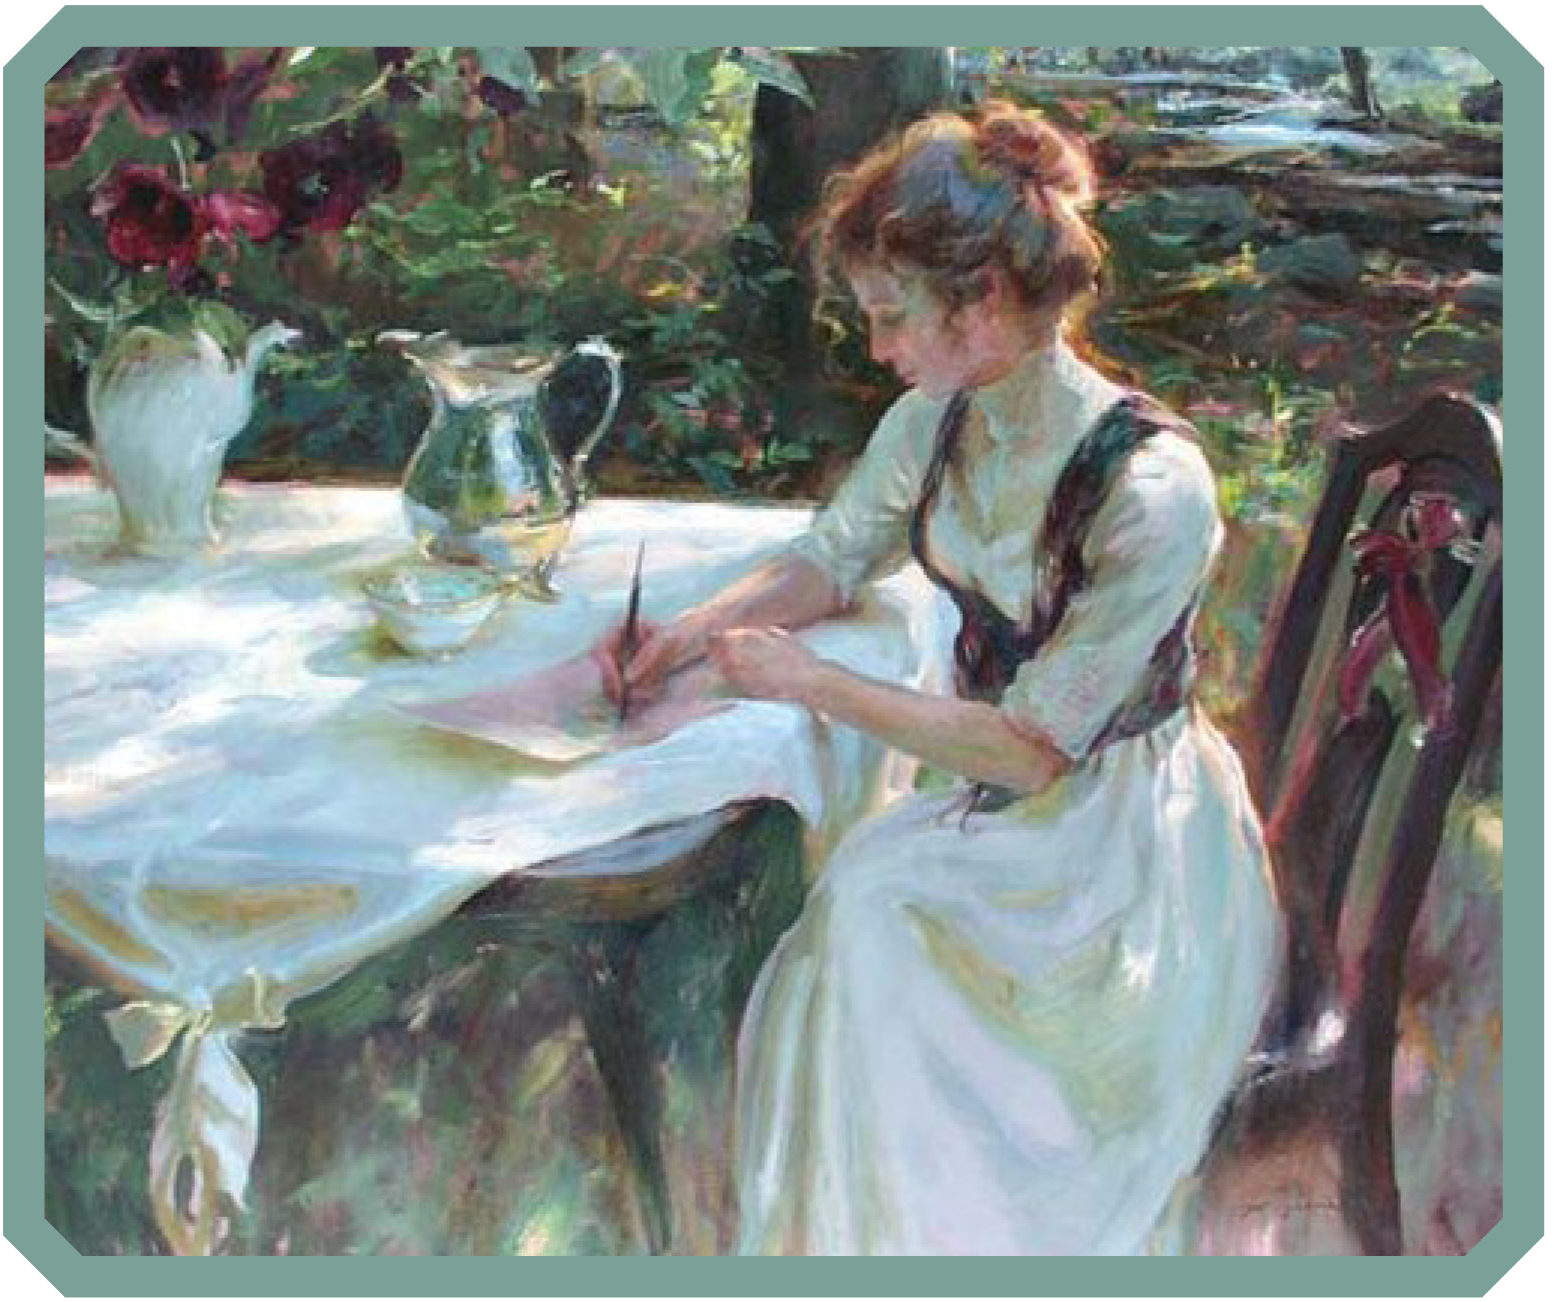 Woman write at table in garden